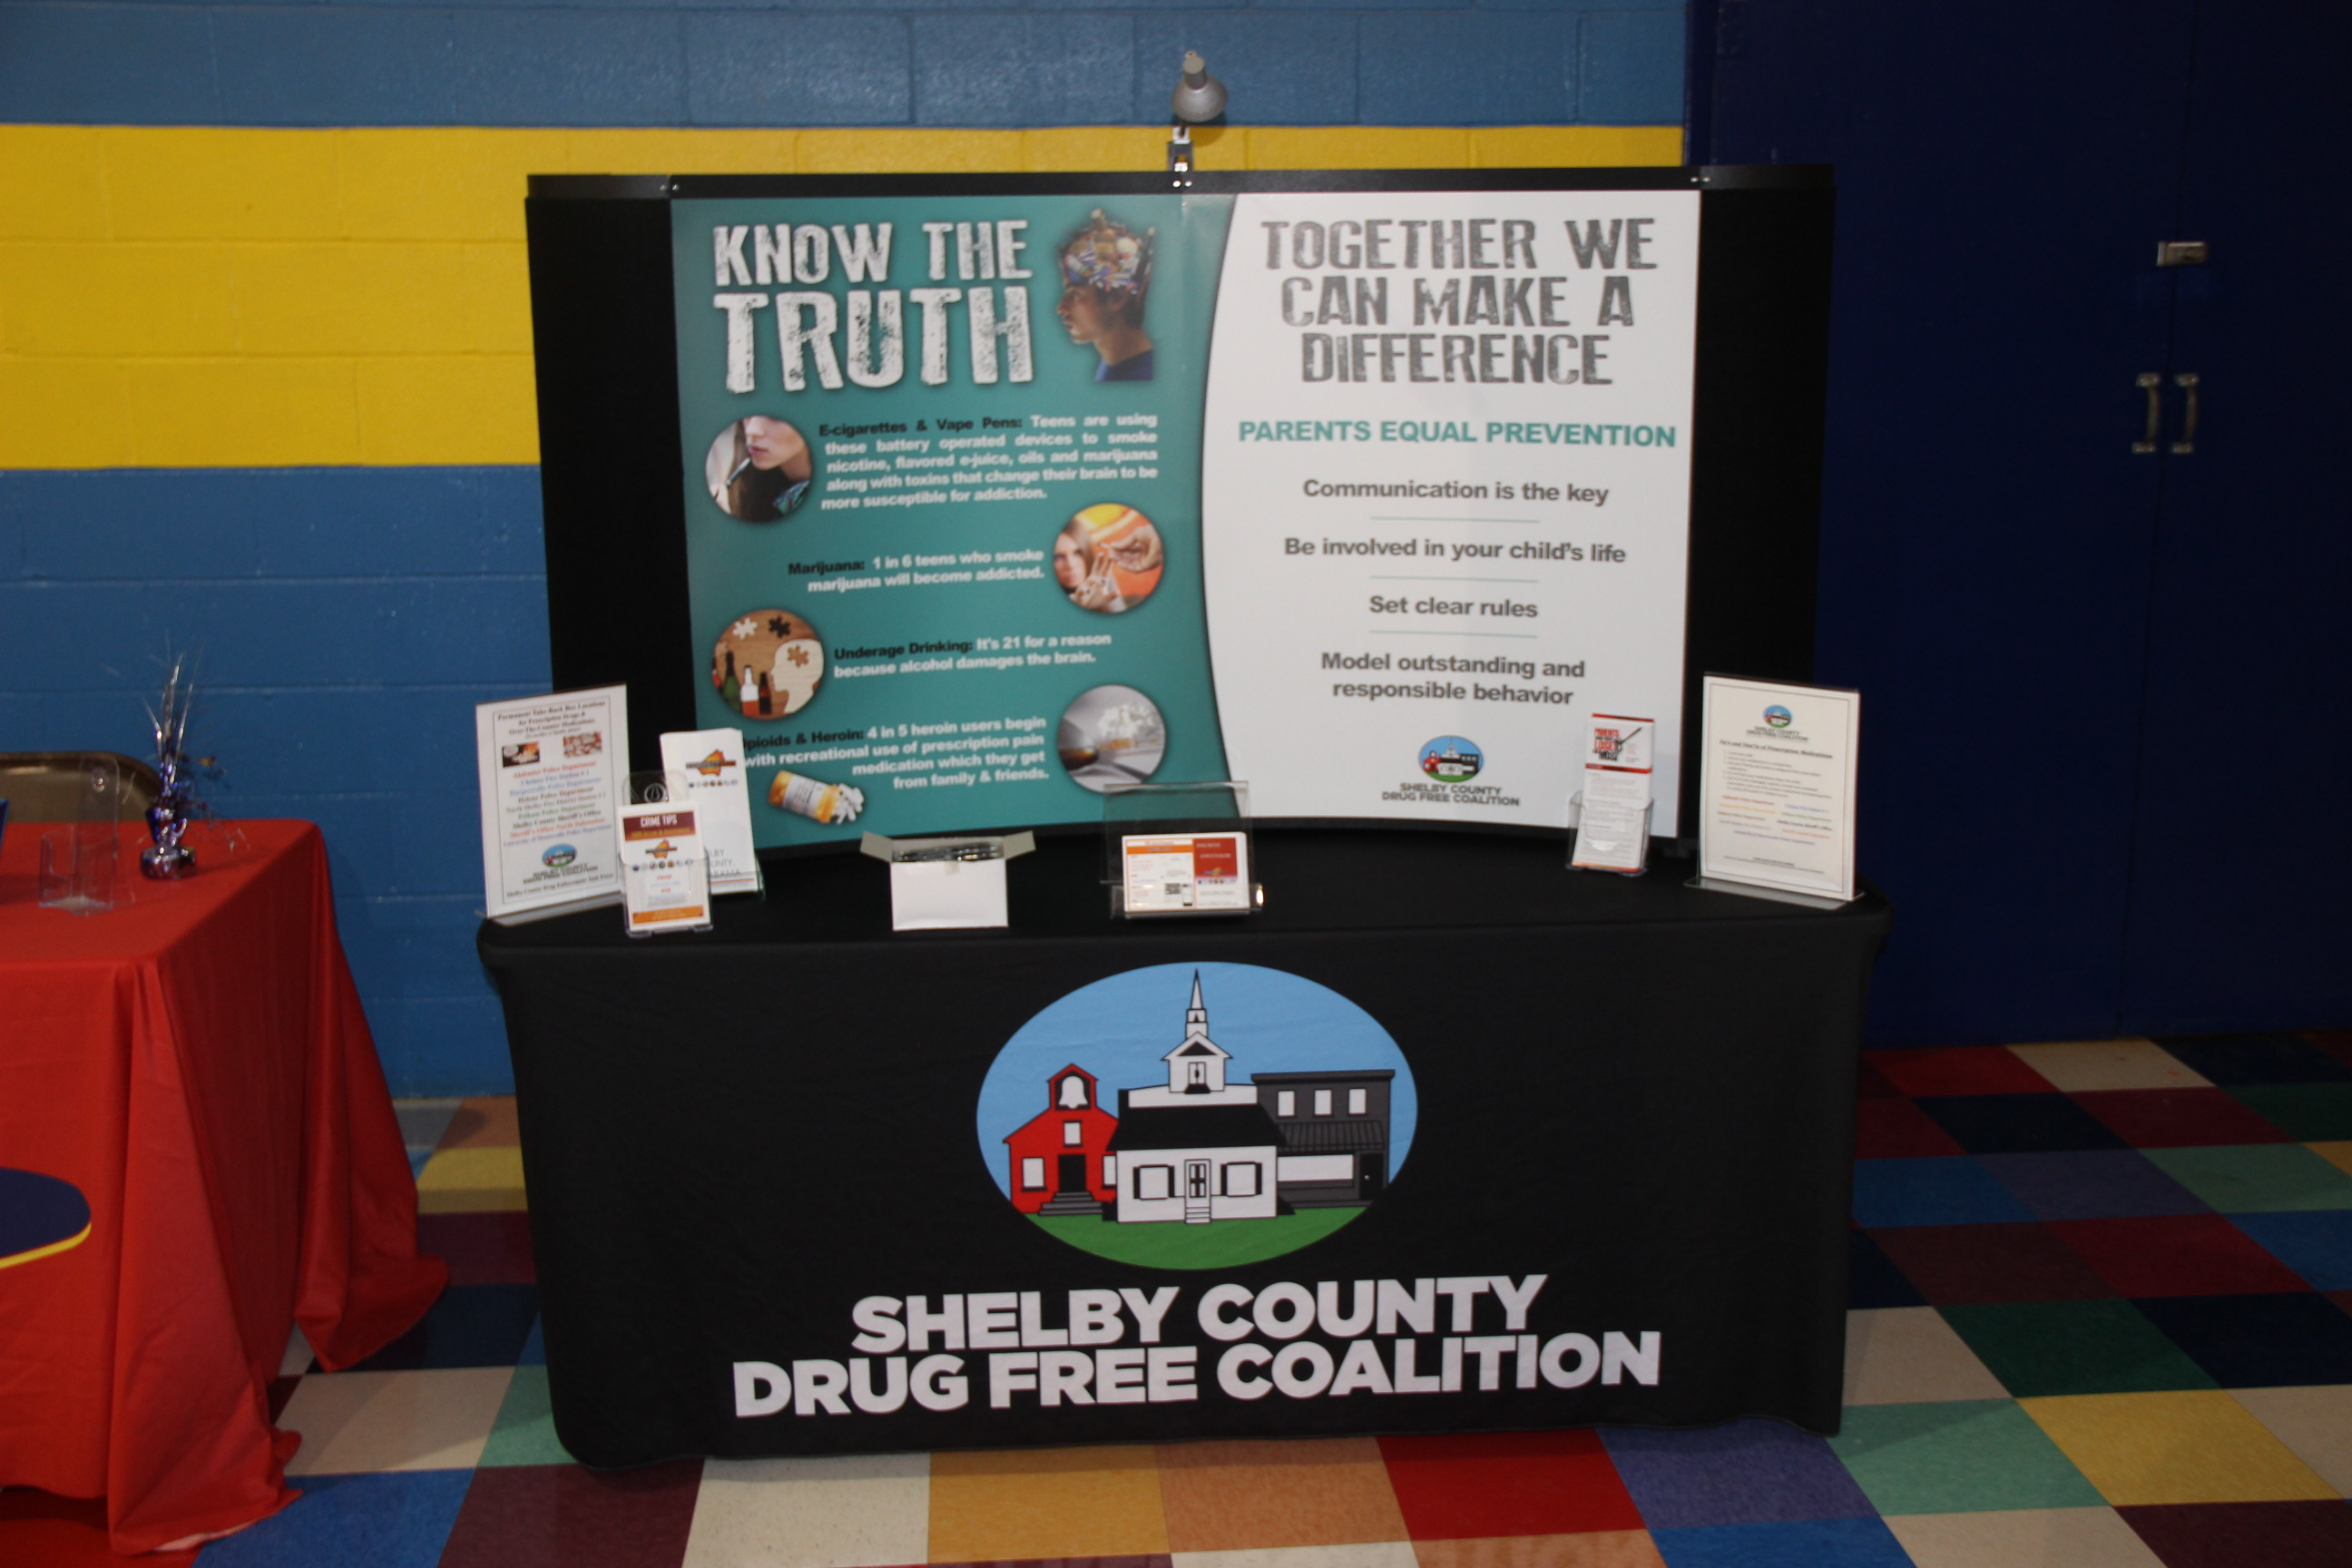 Shelby County Drug Free Coalition